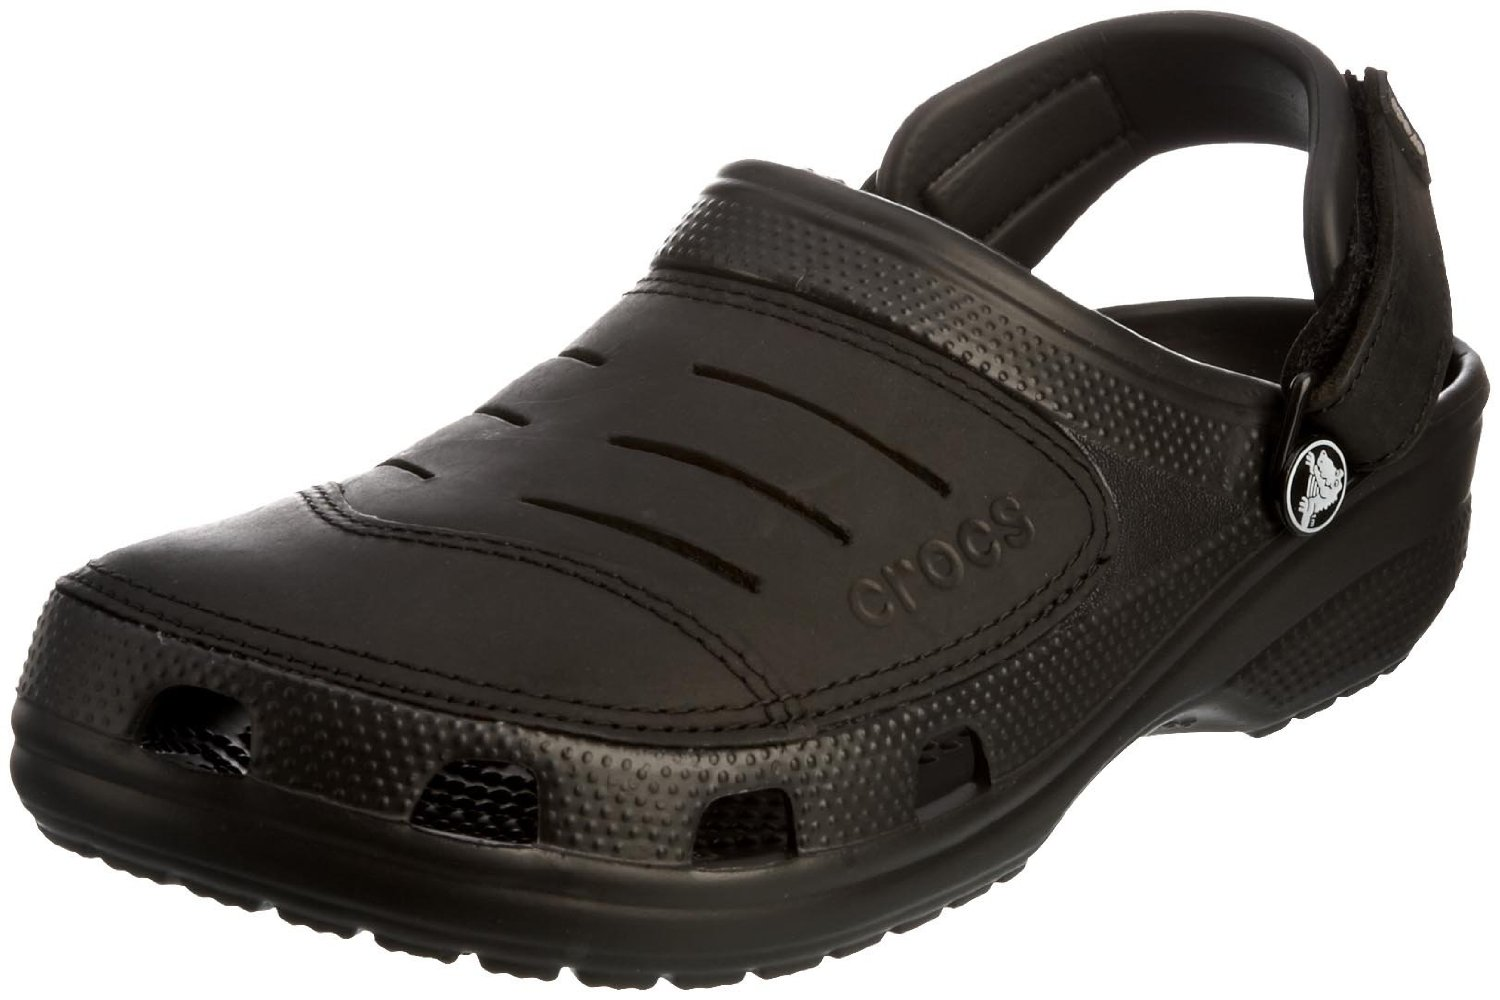 Crocs Men S Yukon Clog All About Shoes Amp Accessories